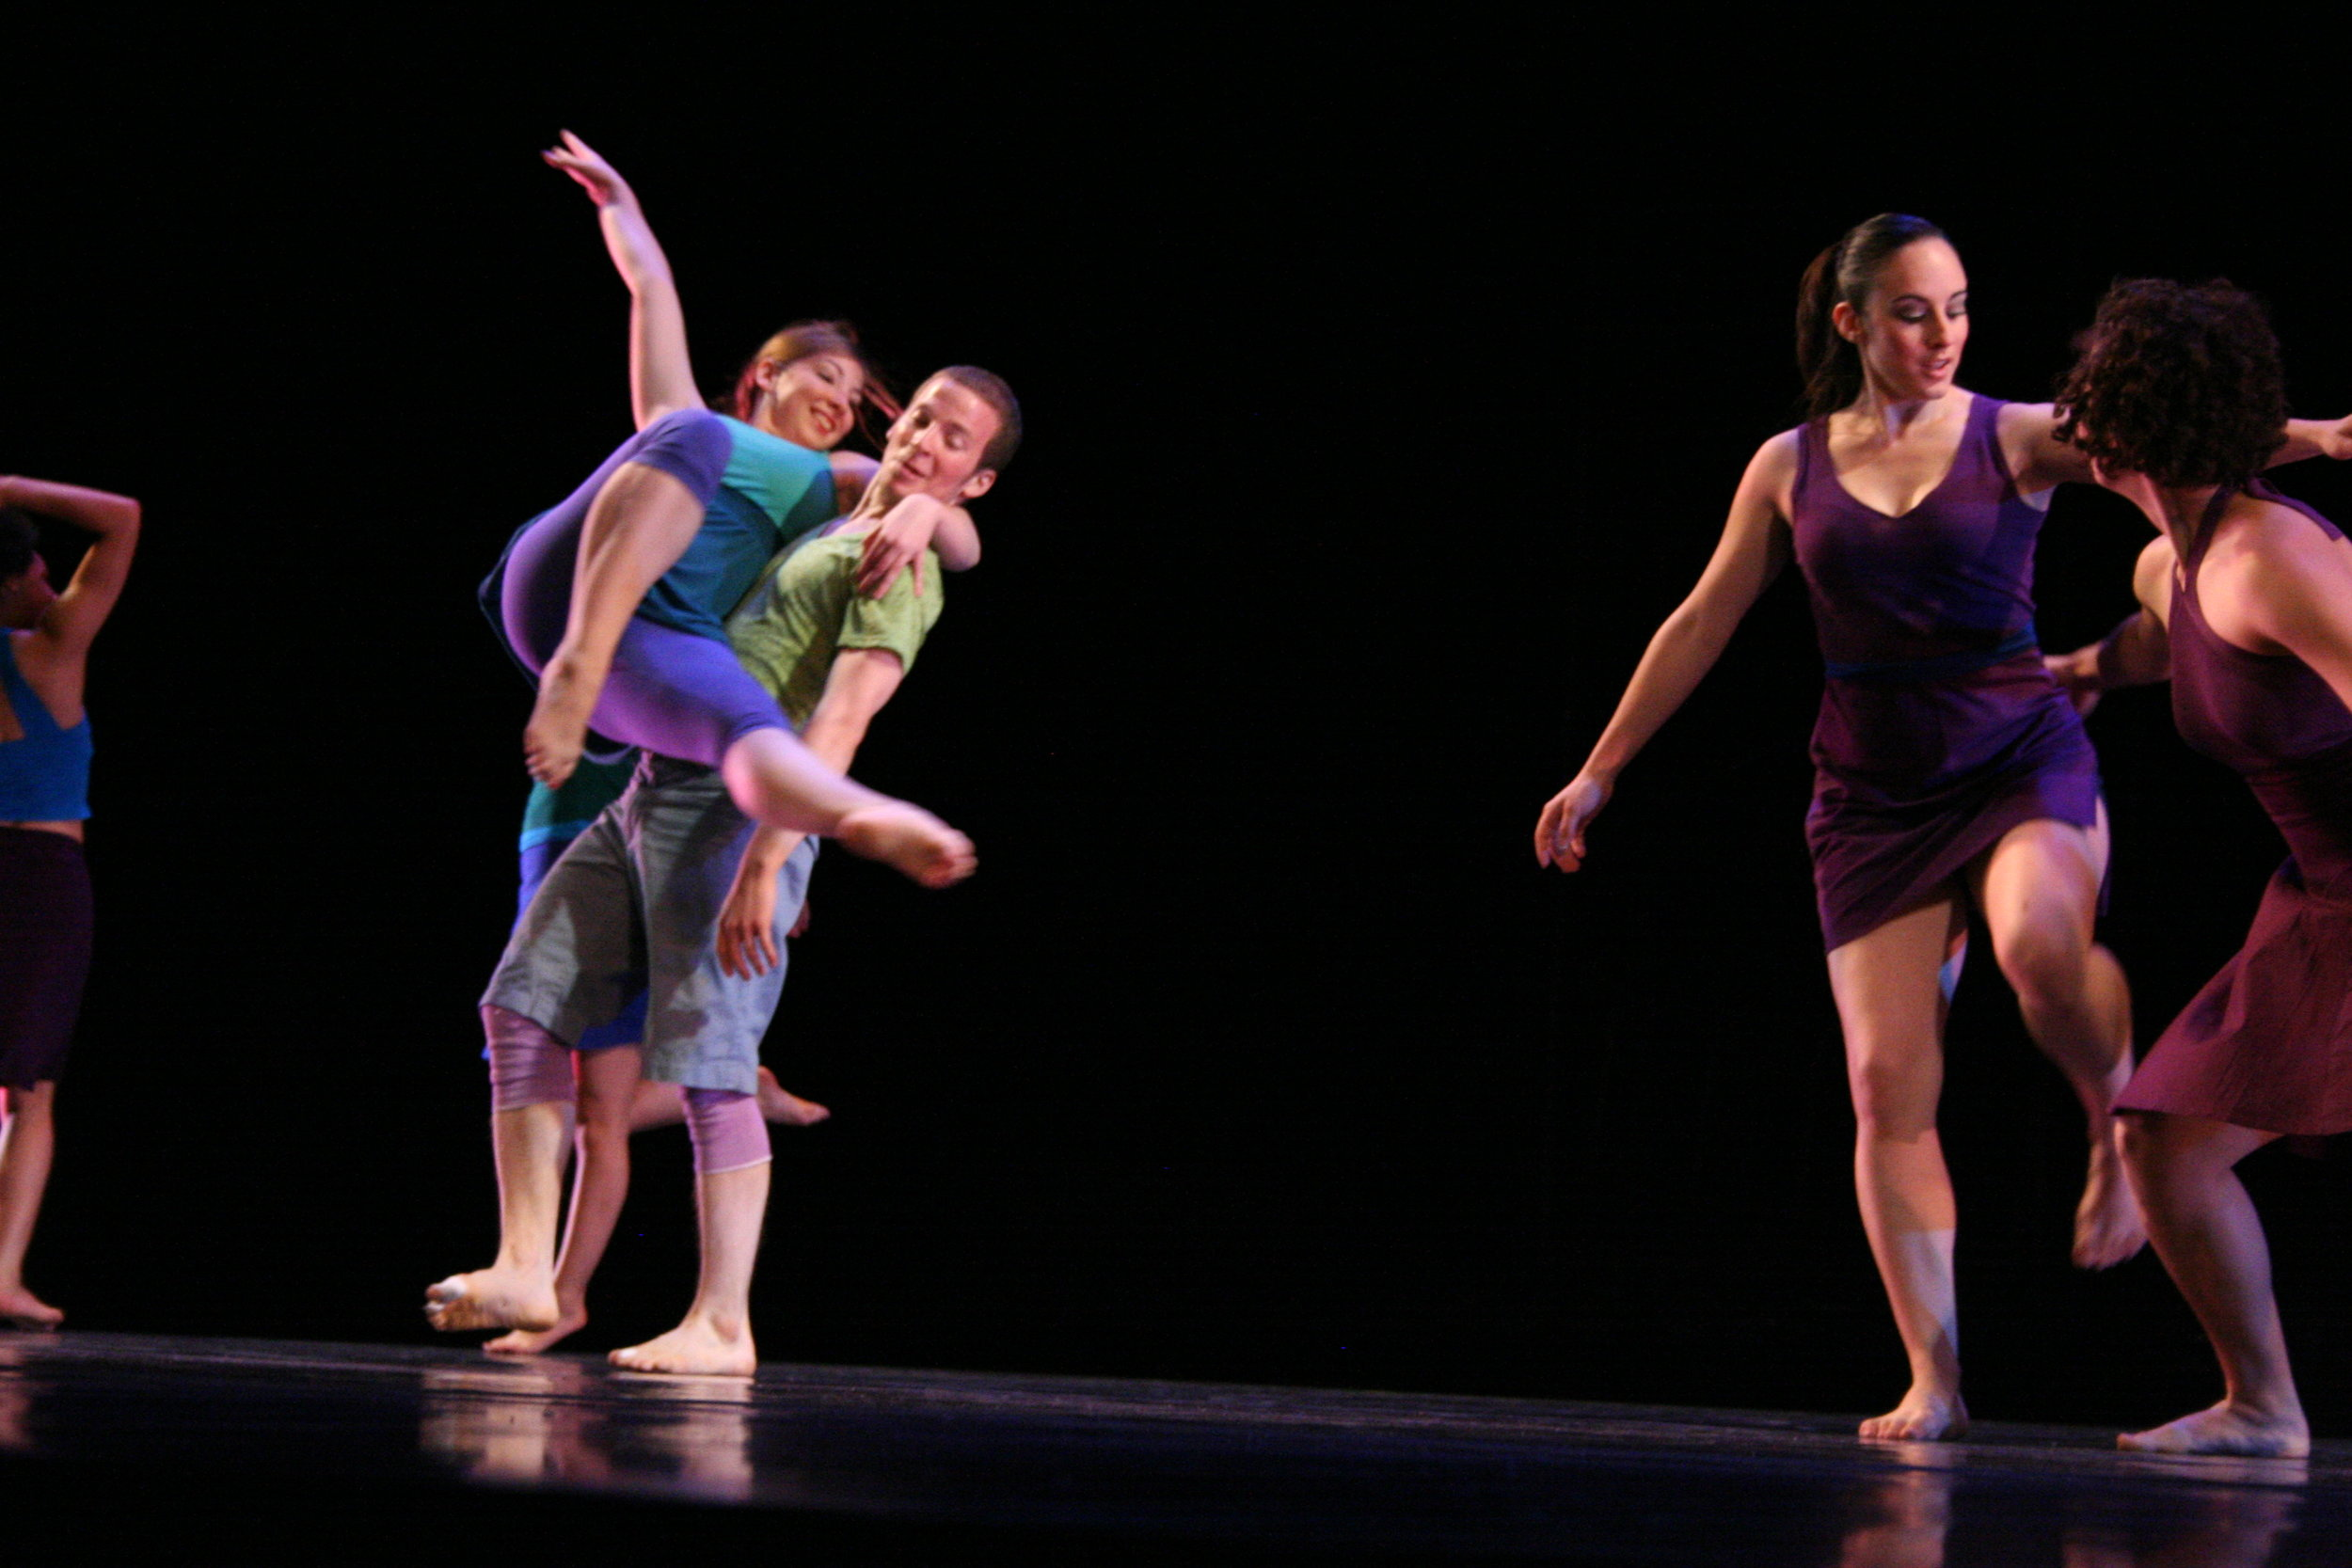 Dance_Dwtn_Remix_Culture_2010 (67 of 1423).JPG